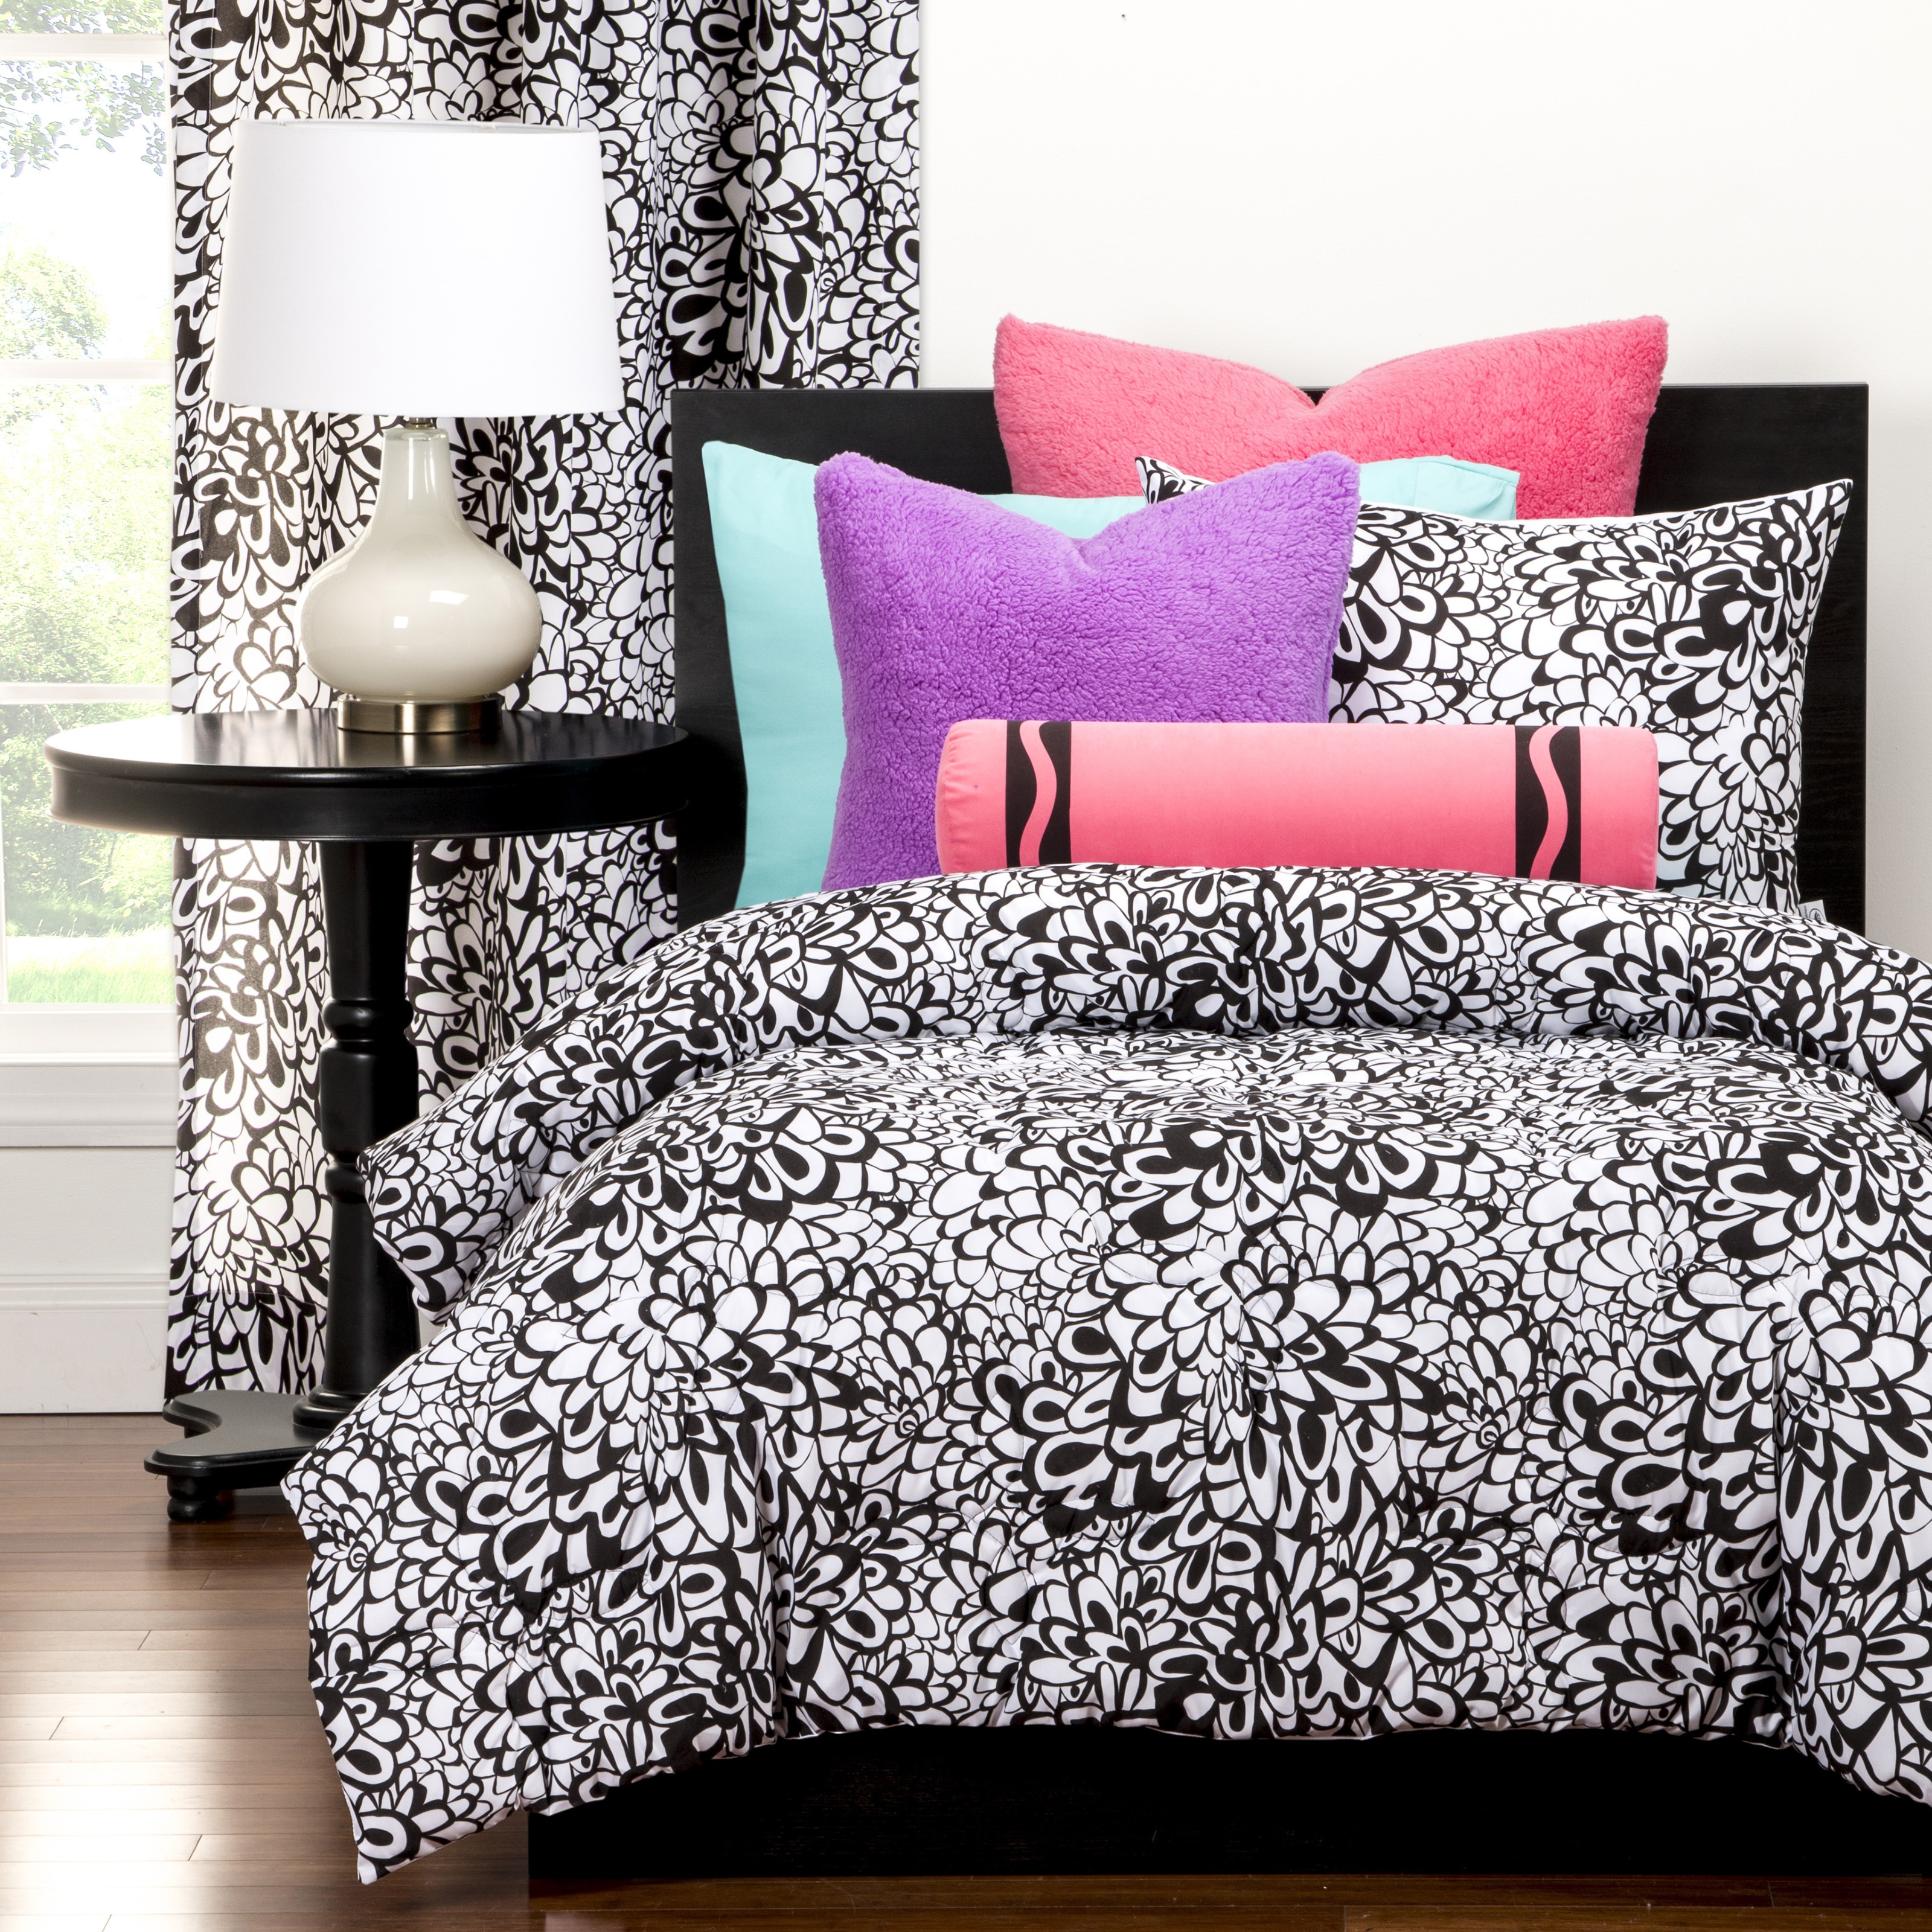 Crayola Graphic Blooms Full/Queen Comforter set